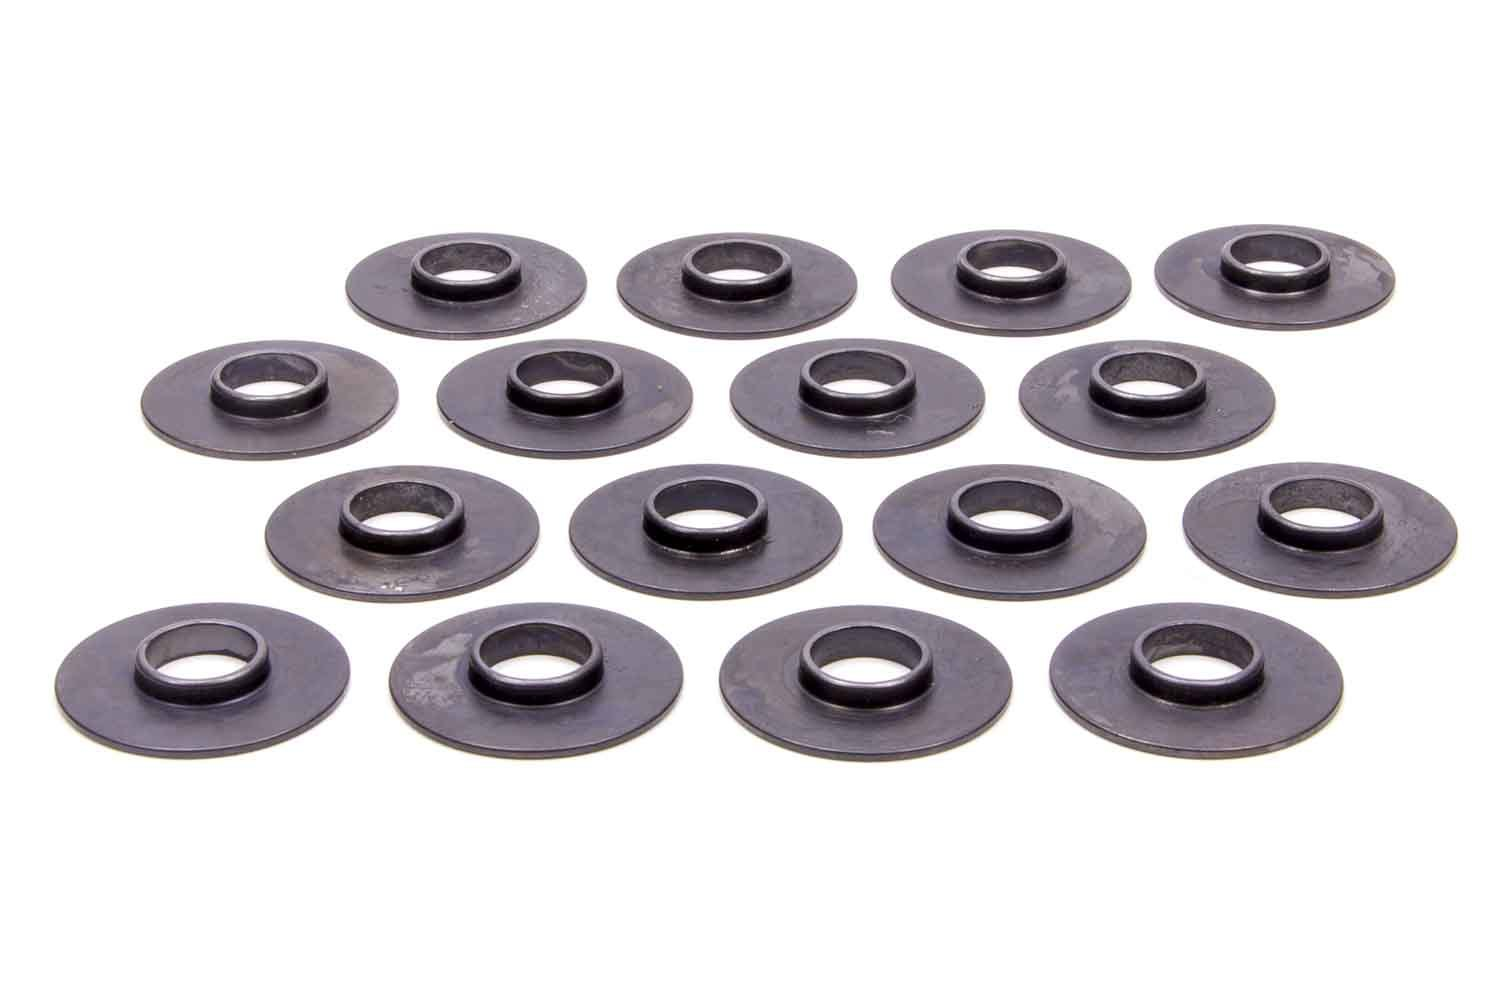 PAC Racing Springs PAC-S127 Valve Spring Locator, Inside, 0.030 in Thick, 1.500 in OD, 0.630 in ID, 0.715 in Spring ID, Chromoly, Set of 16